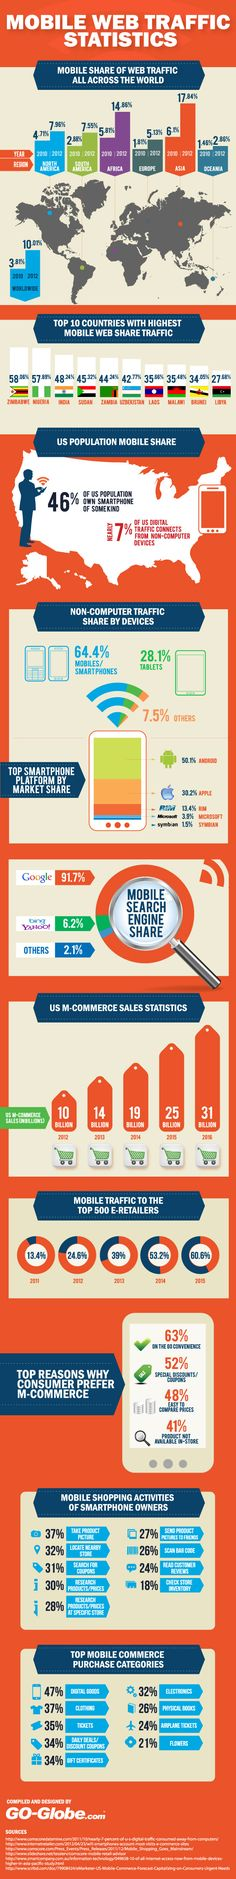 "Our infographic ""Mobile Web Traffic"" covers the latest online mobile traffic statistics including mobile search engine shares, US M-commerce sales, Mo"